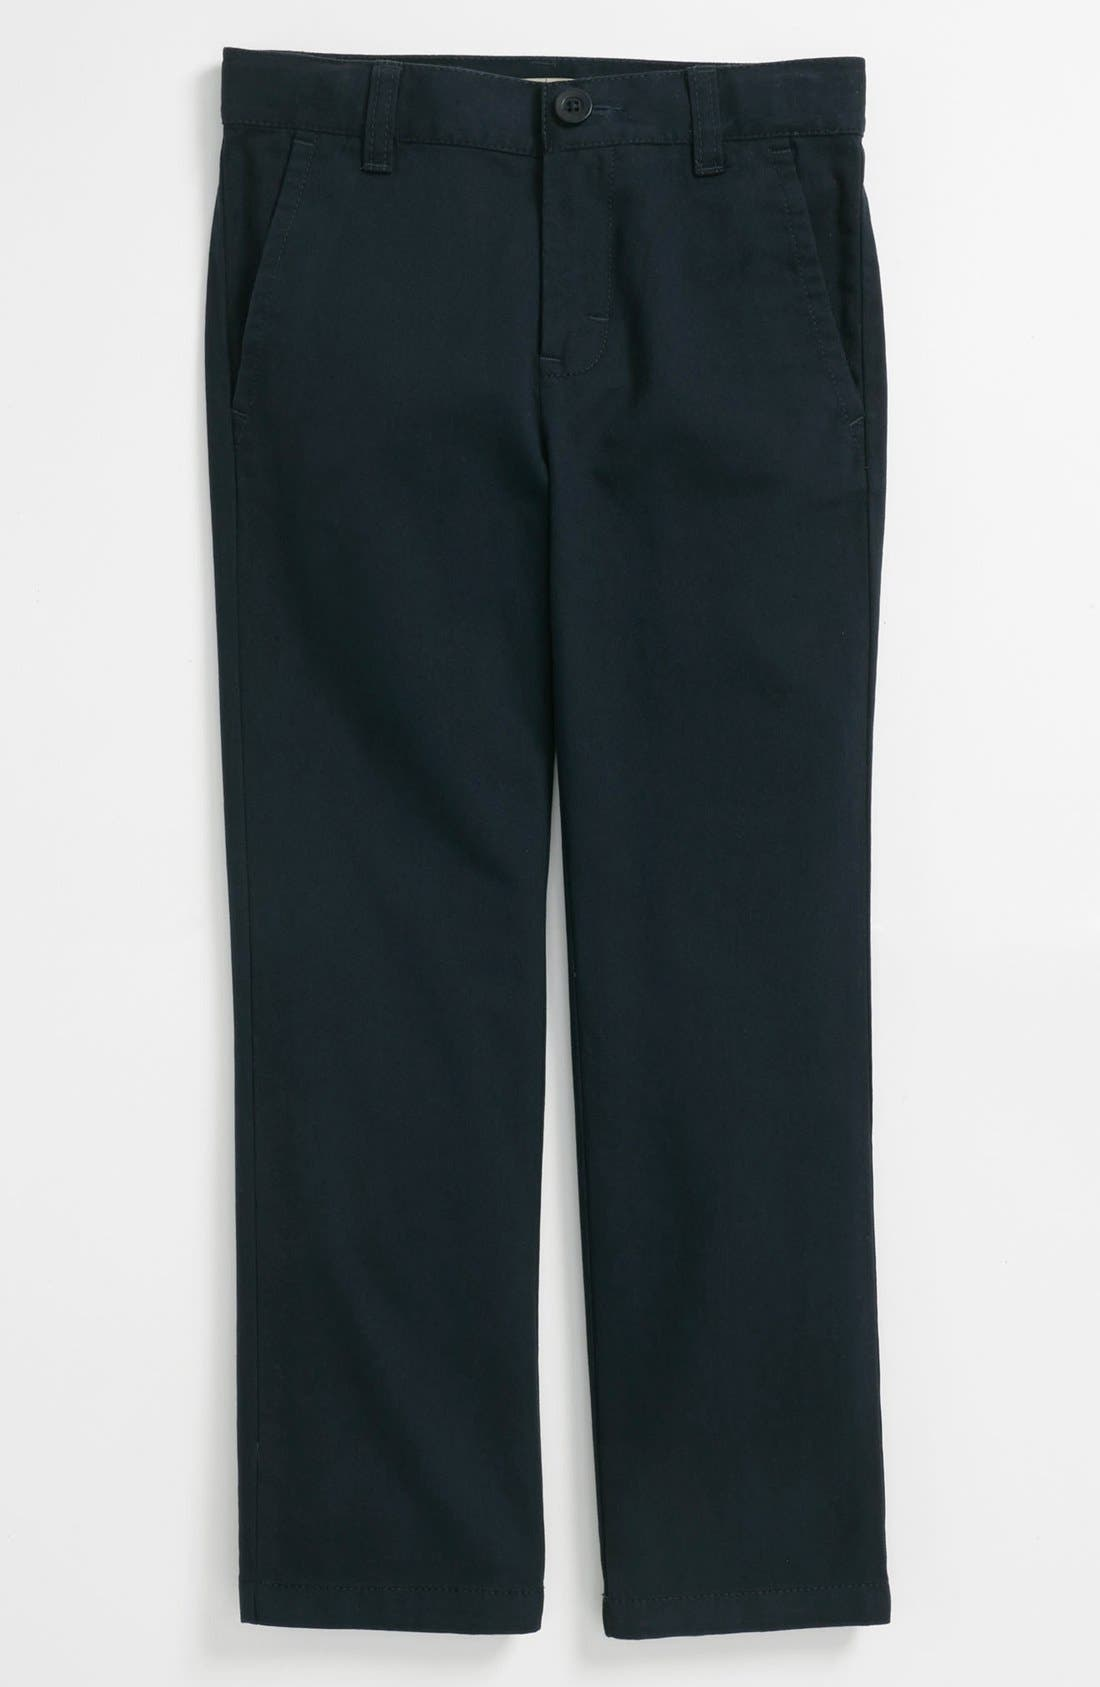 Main Image - Nordstrom 'Edward' Chinos (Little Boys & Big Boys)